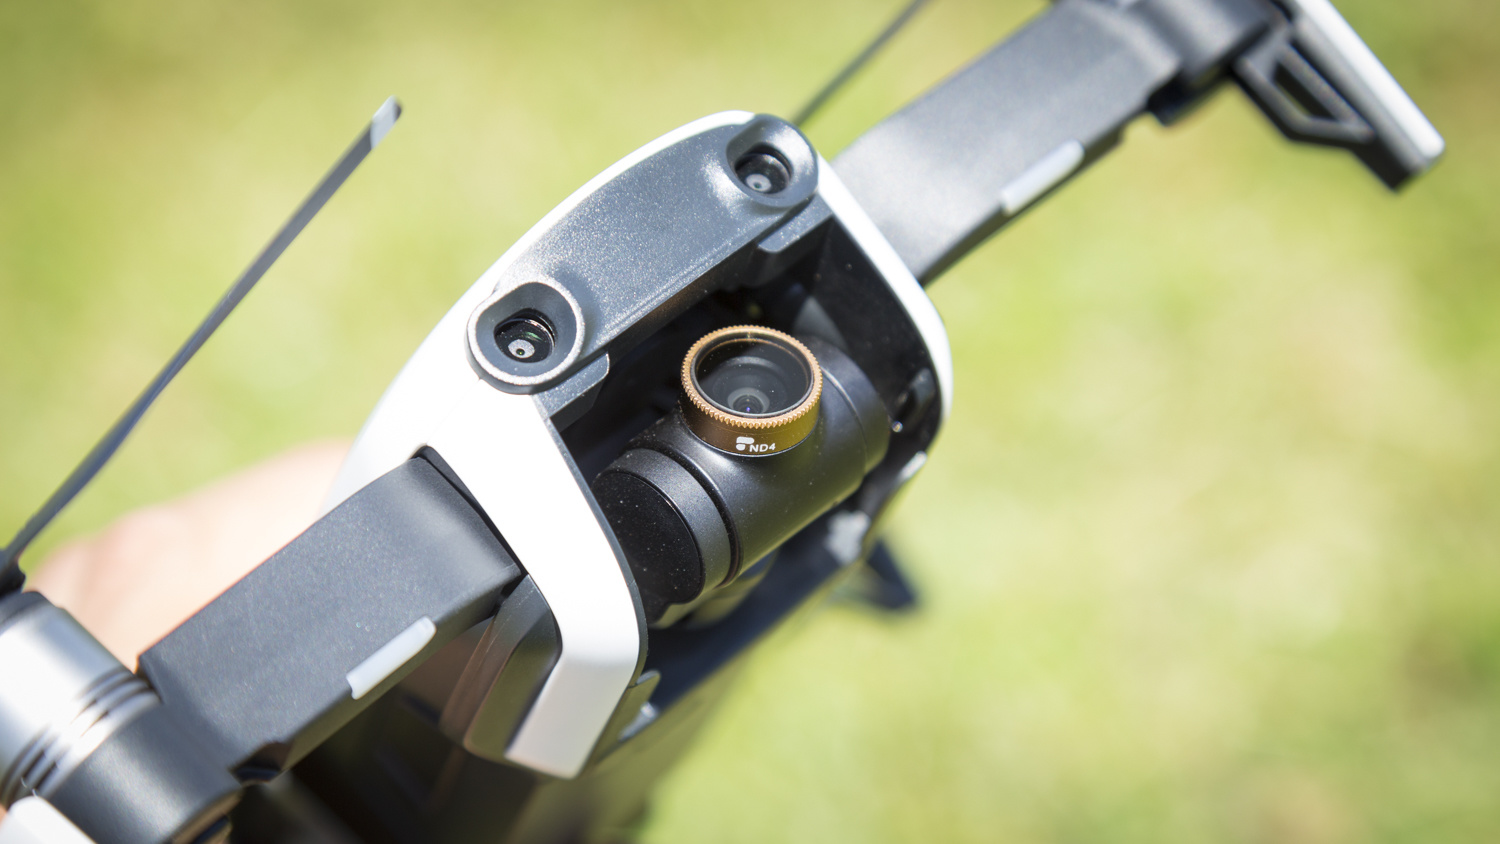 Fstoppers Reviews the DJI Mavic Air: The Good, the Bad, and the Ugly